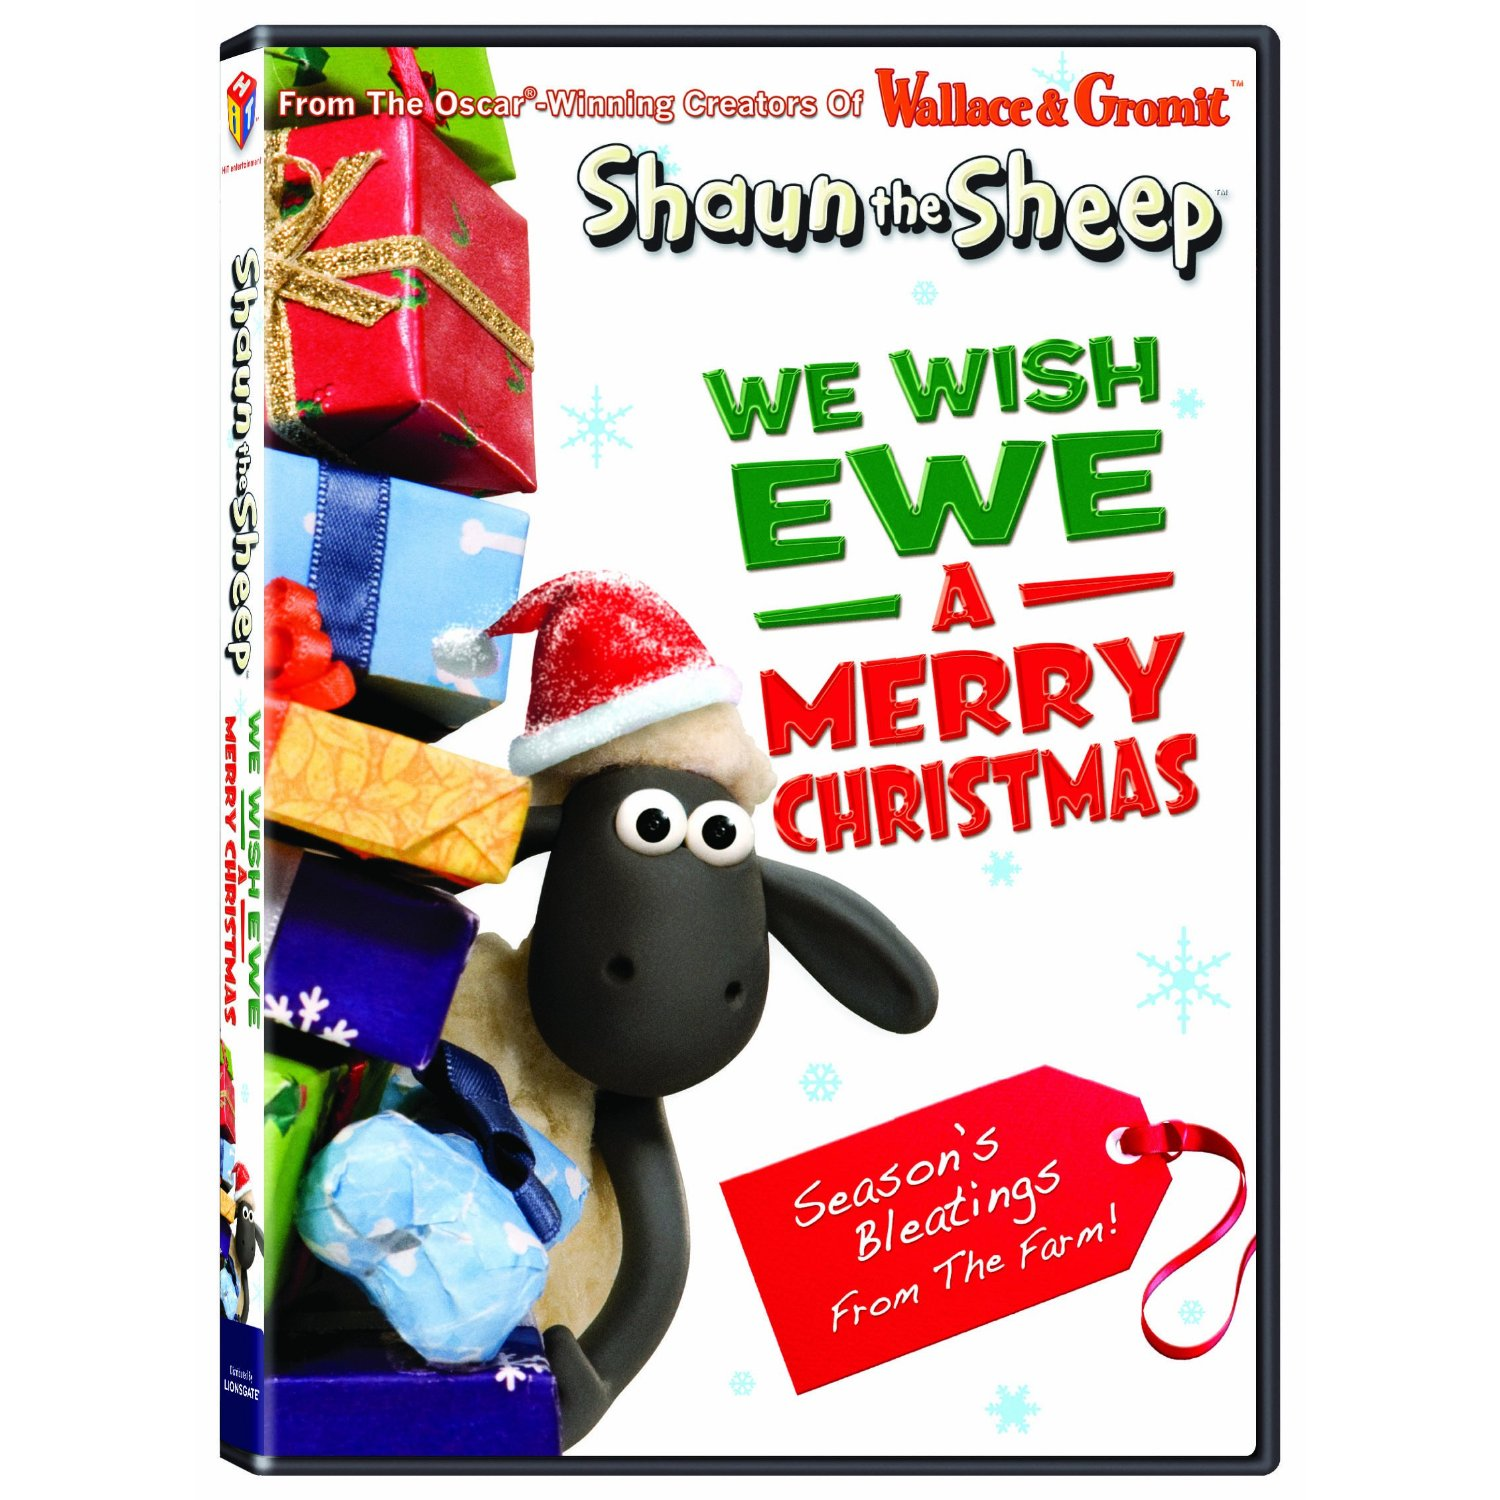 Shaun the Sheep for the Holidays! We Wish Ewe A Merry Christmas DVD #Giveaway